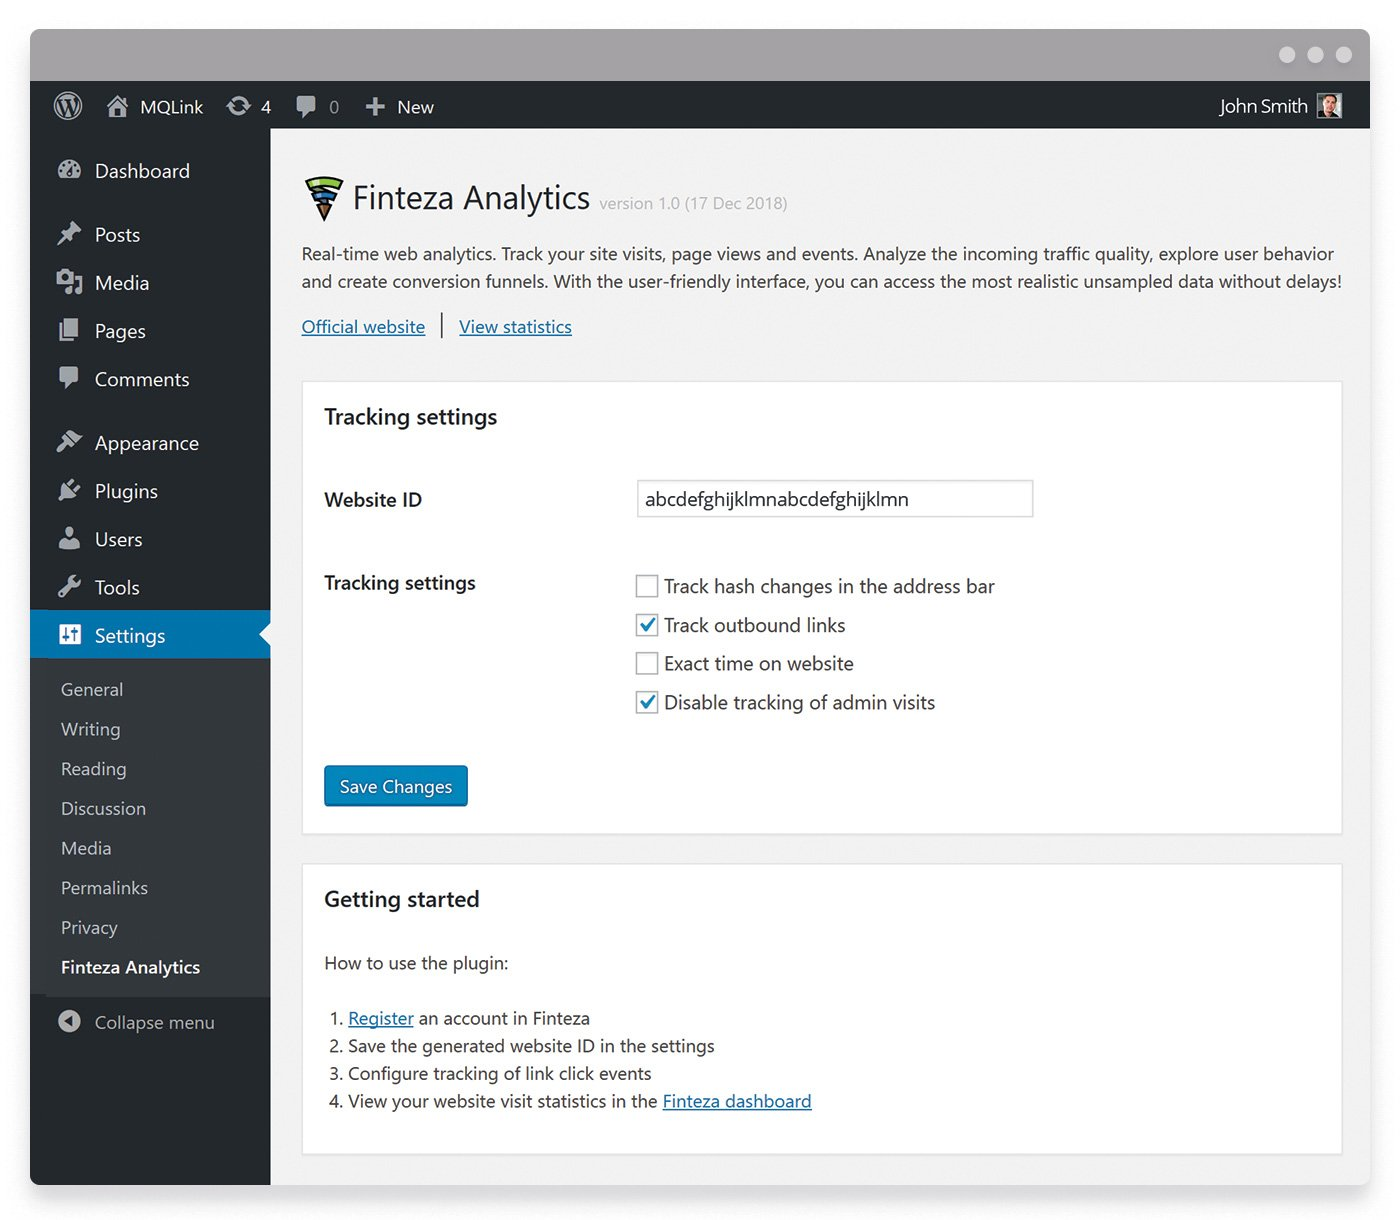 Finteza Analytics section in the Settings page